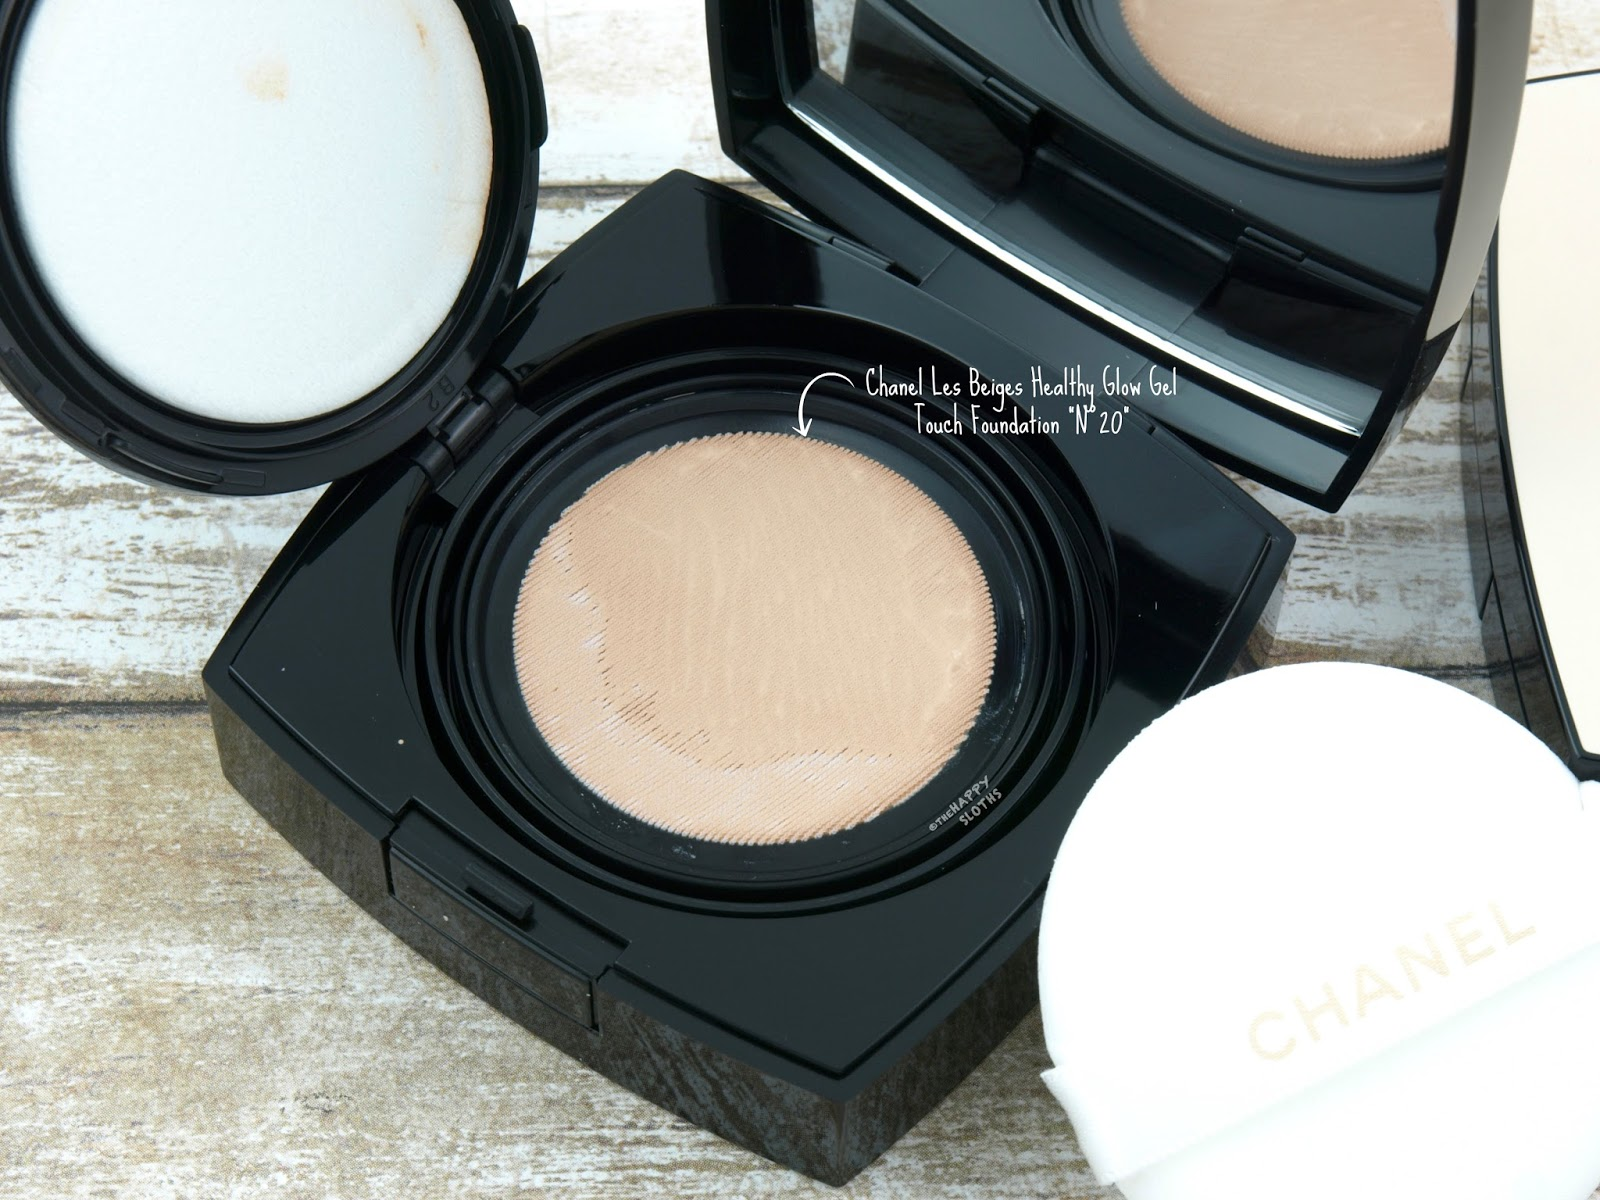 "Chanel Les Beiges Healthy Glow Gel Touch Foundation ""N°20"" Review Swatches"